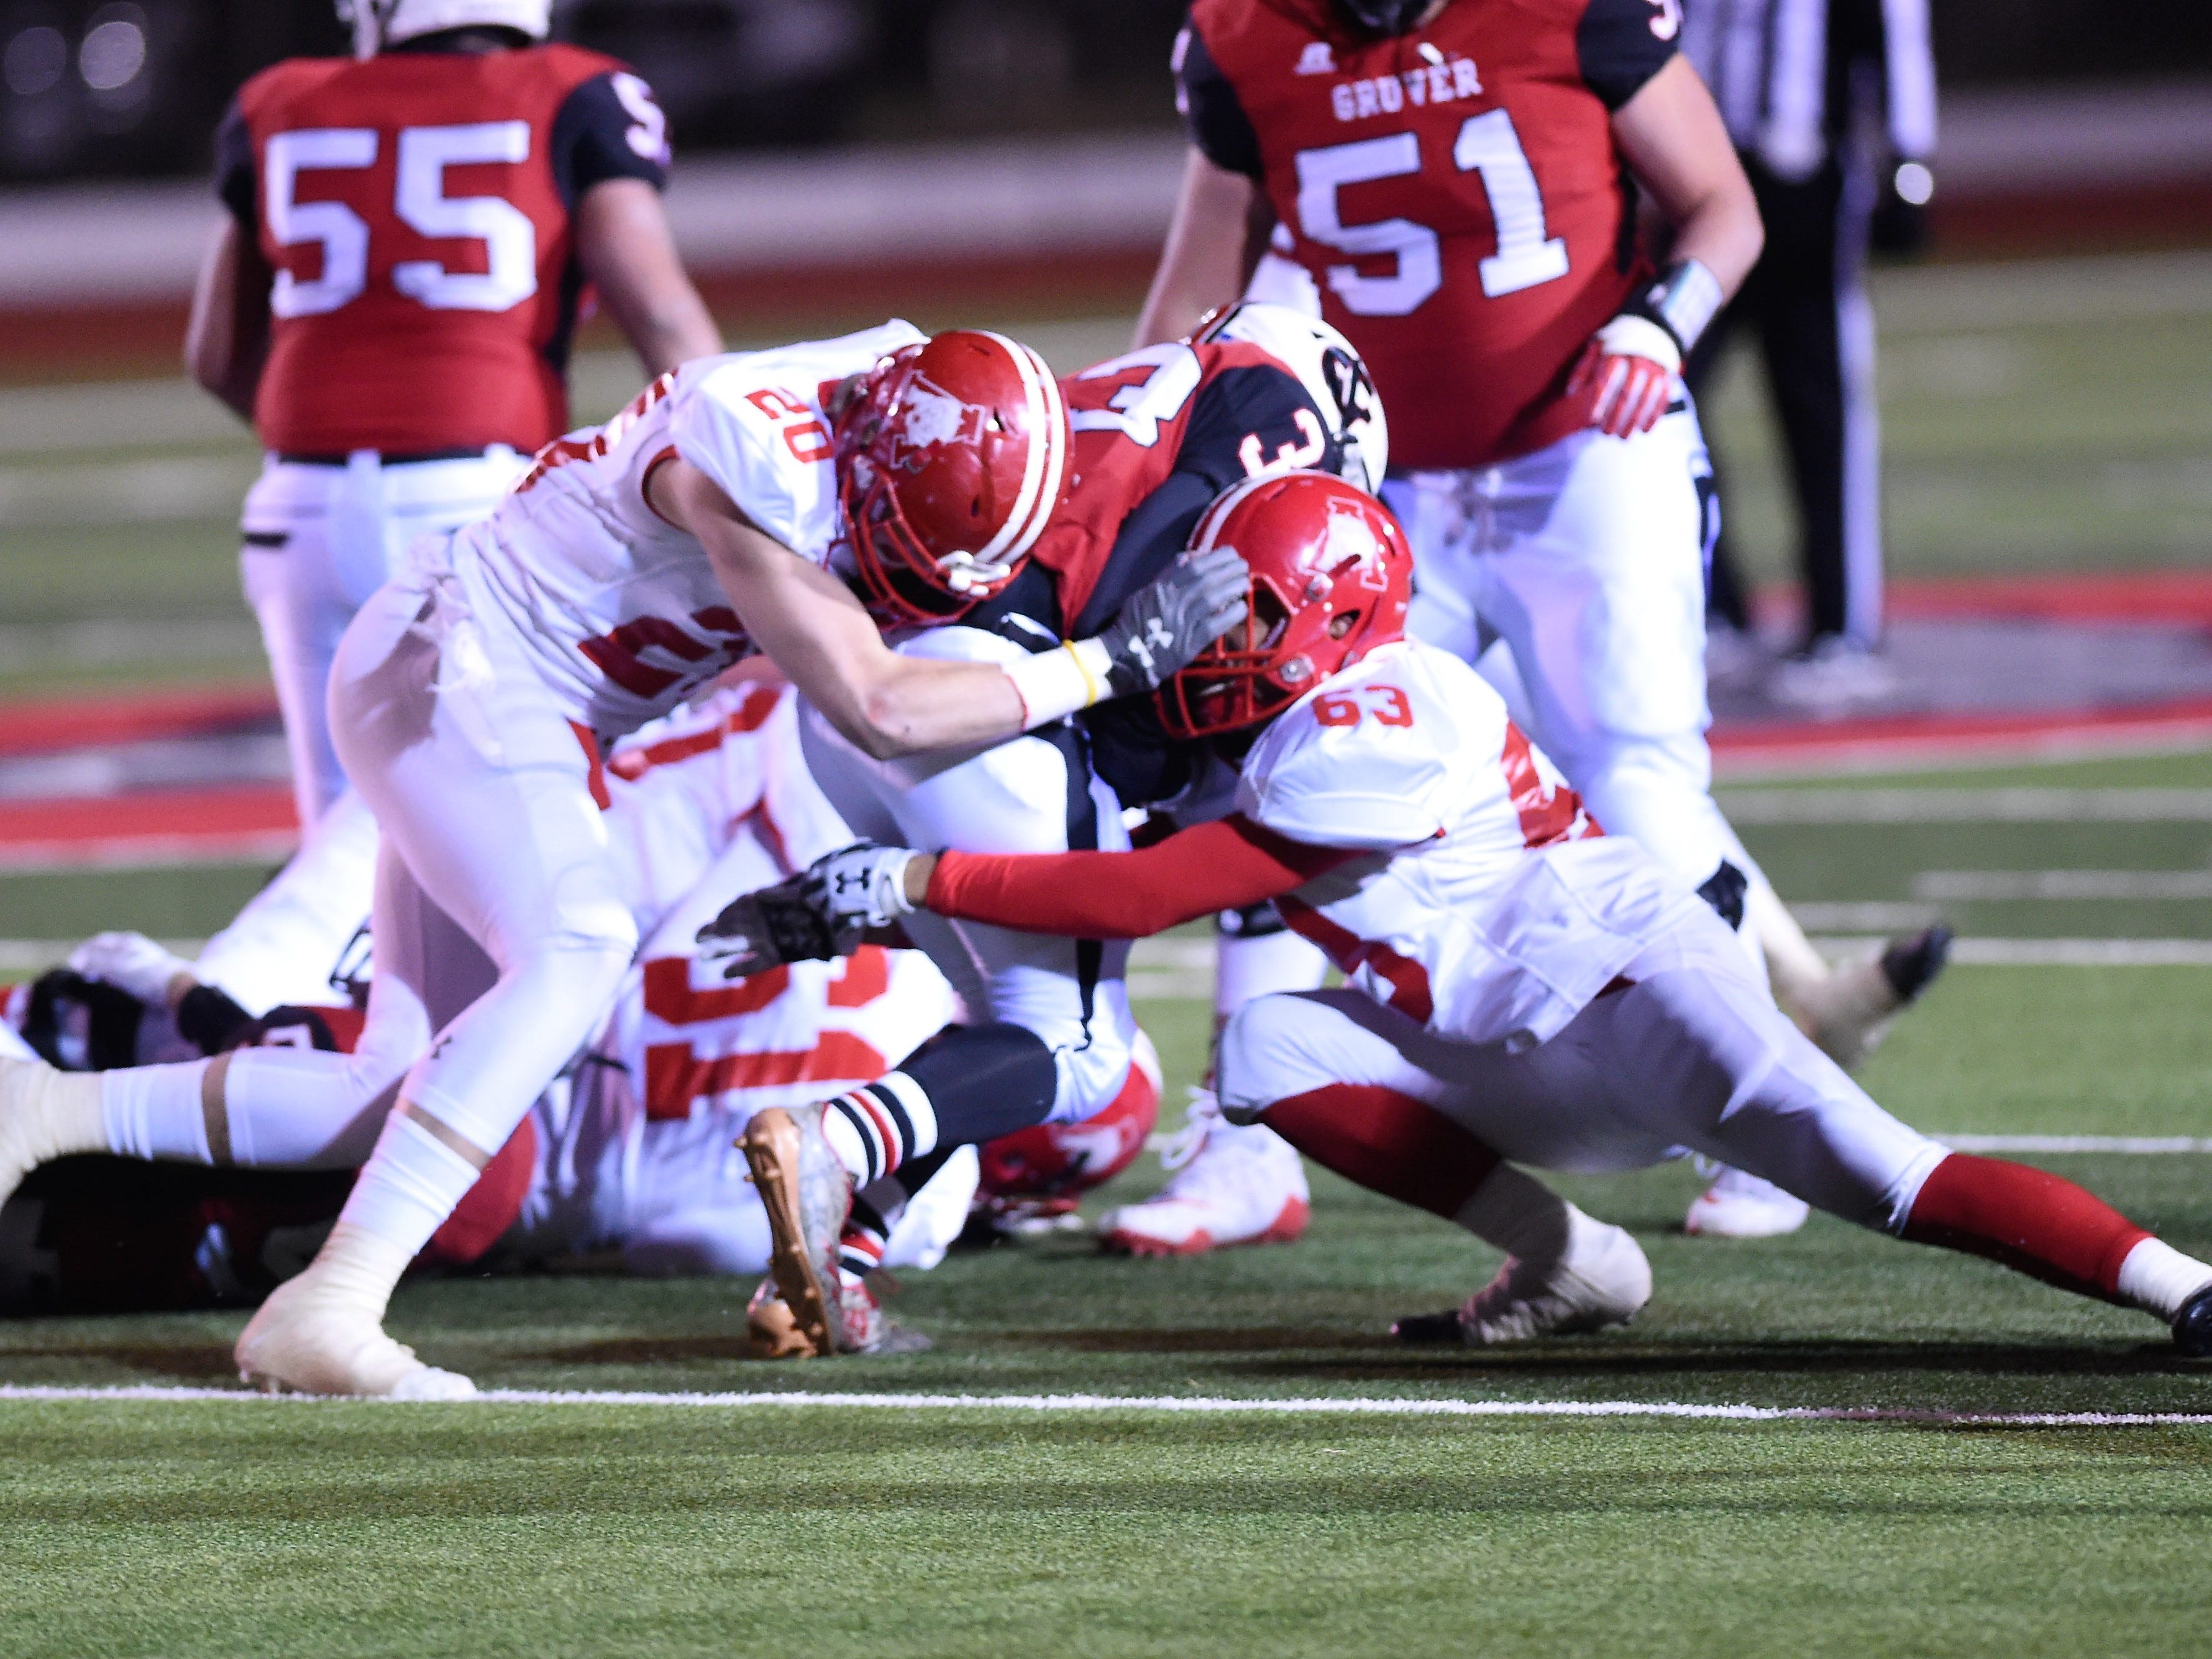 Albany's Ryan Hill (20) and Gregori Mikeska (63) sandwich Gruver's Brice McLaughlin (33) in the Class 2A Division II state semifinal at Sherwood Memorial Bulldog Stadium in Plainview on Thursday, Dec. 13, 2018.